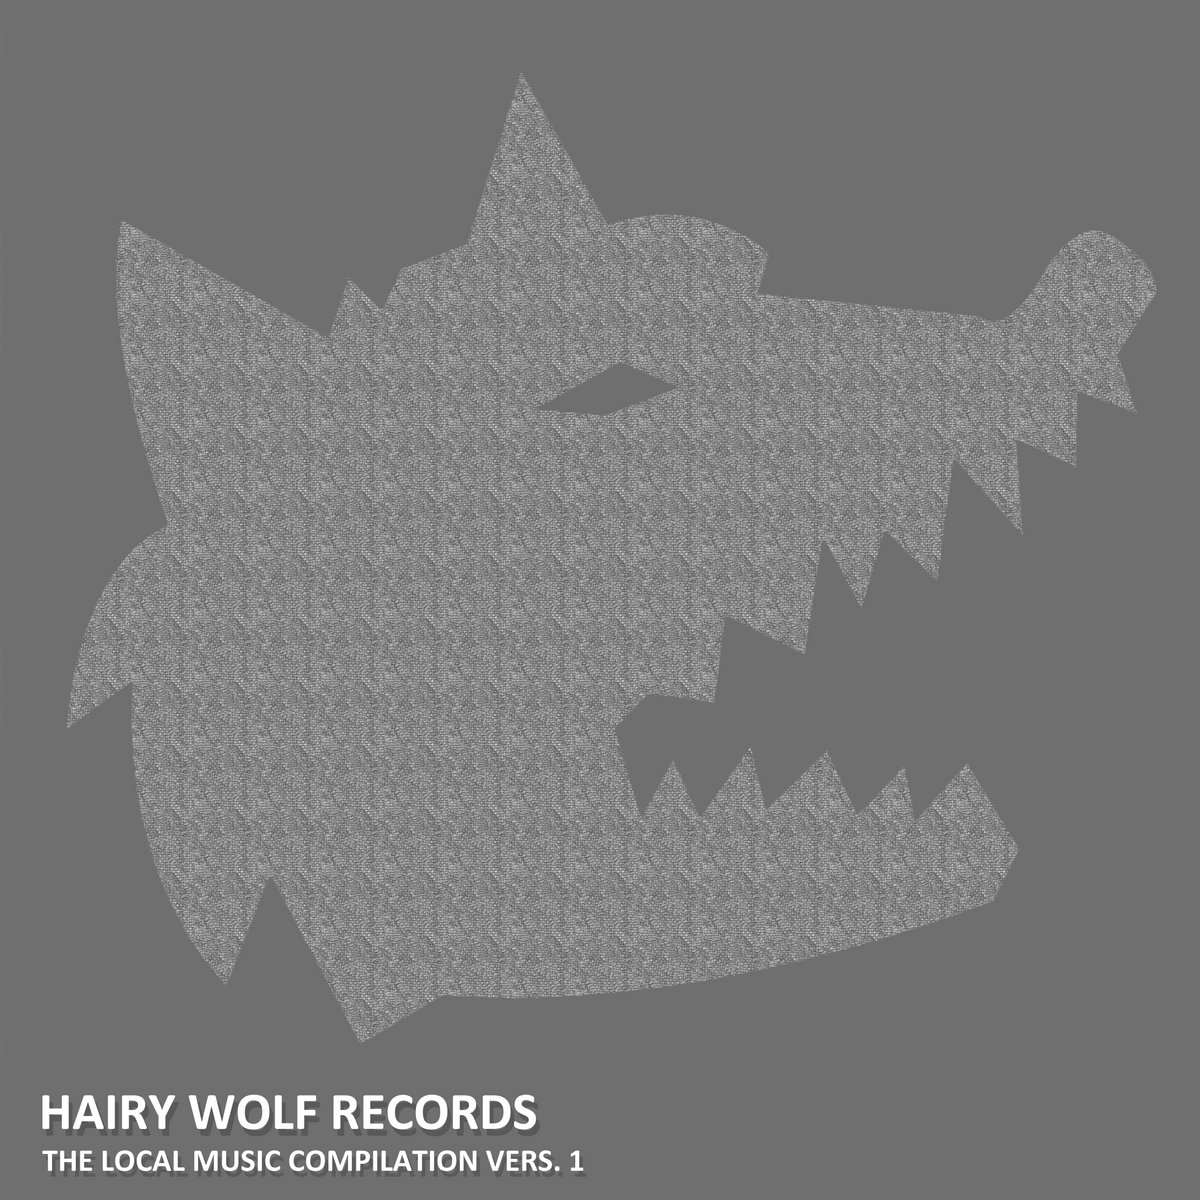 by Hairy Wolf Records